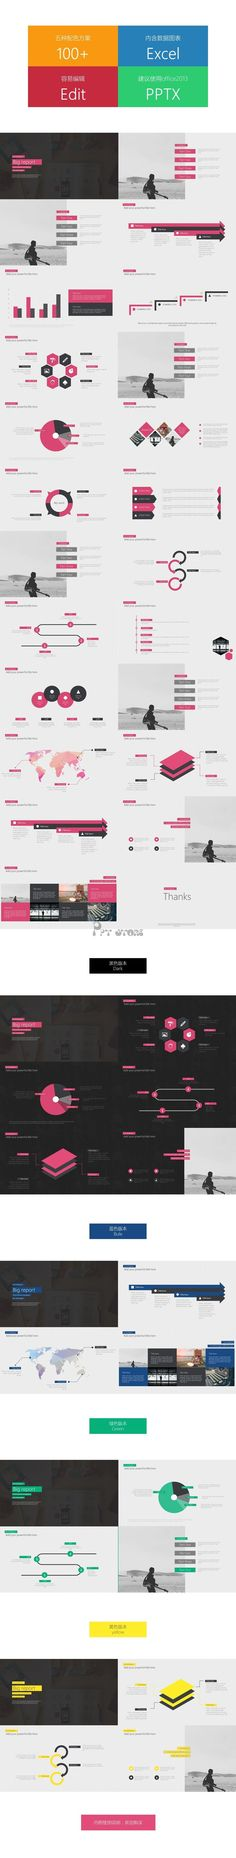 Company Presentation Template - Business PowerPoint Templates